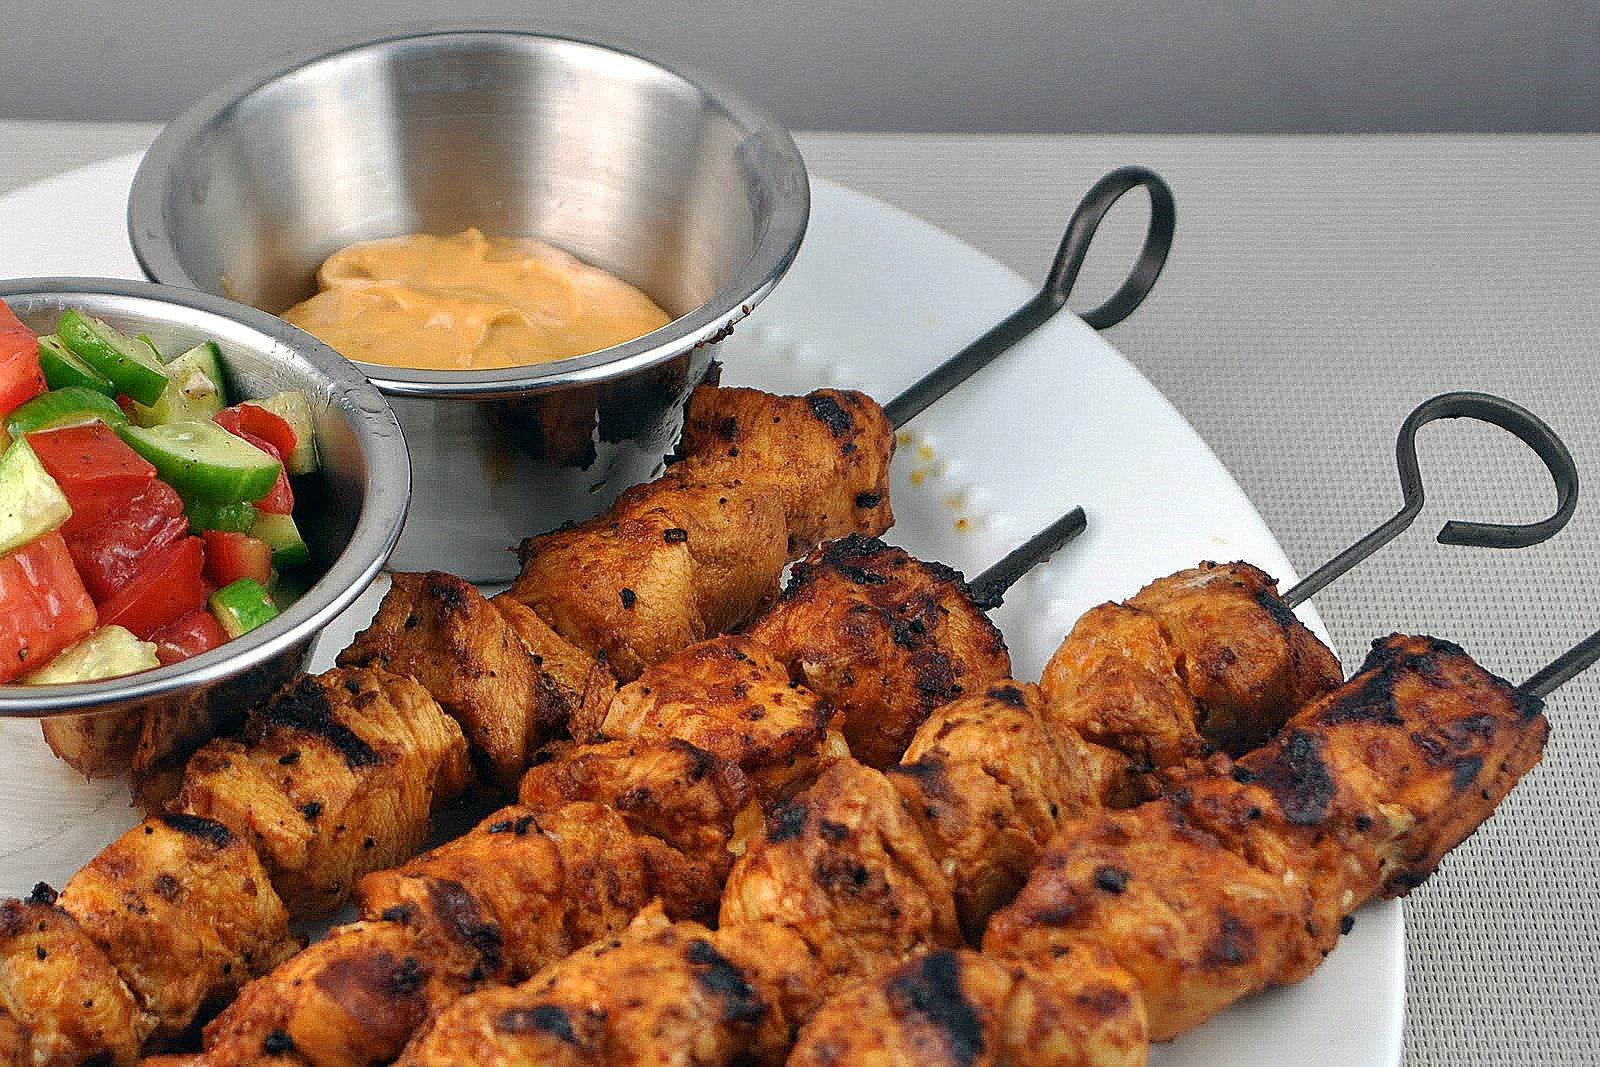 Impeccable Taste: Harissa Chicken Kabobs